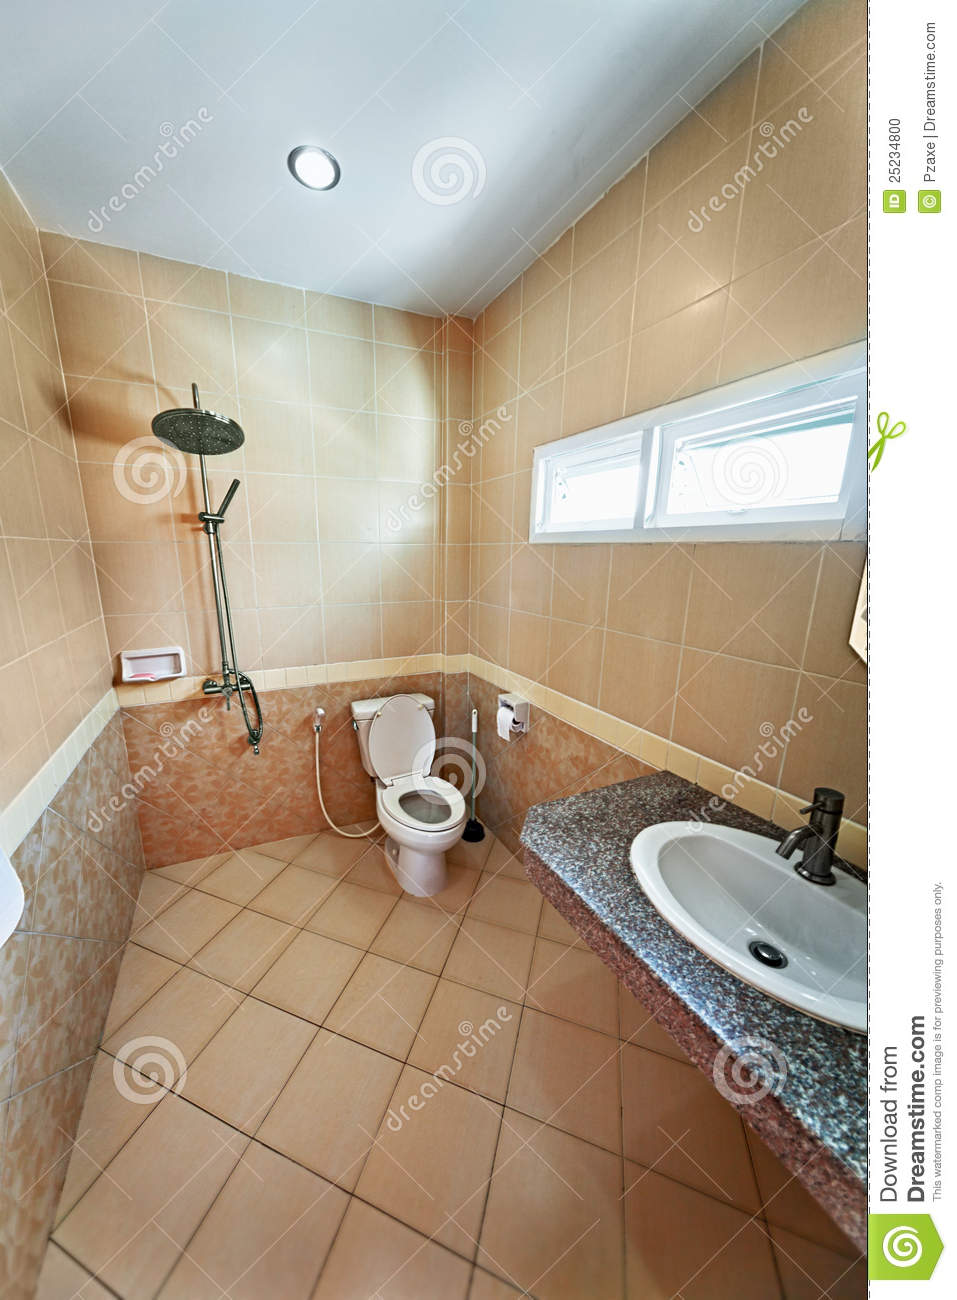 Iinterior of beige bathroom with shower stock photo for Salle de bain moderne 7m2